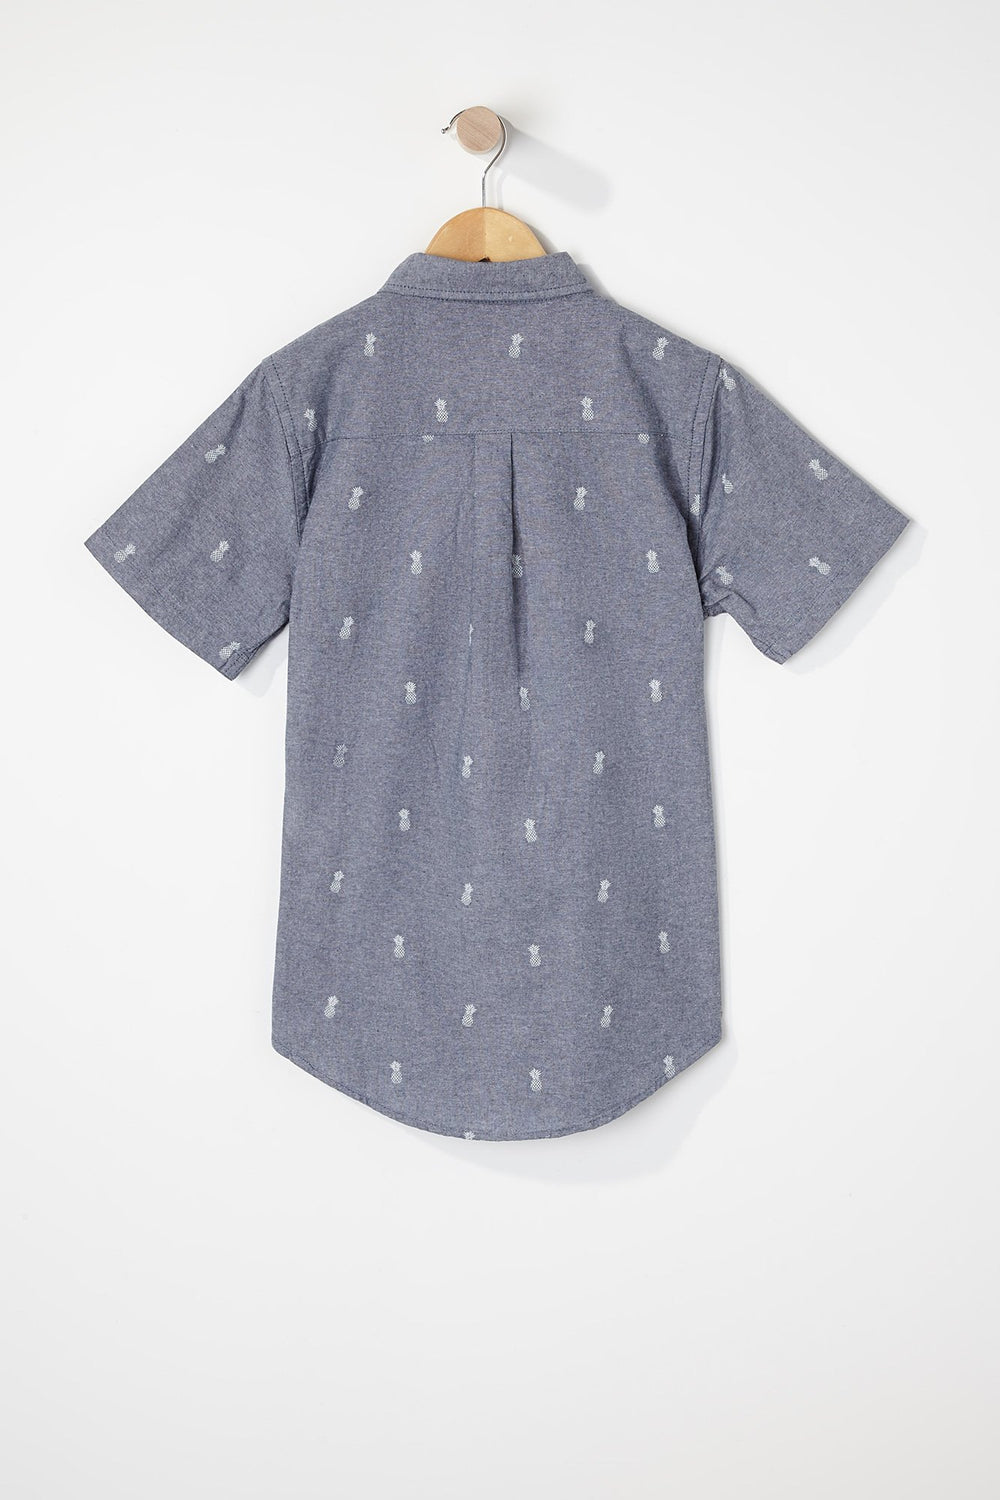 West49 Boys Ditsy Print Button-Up Light Blue